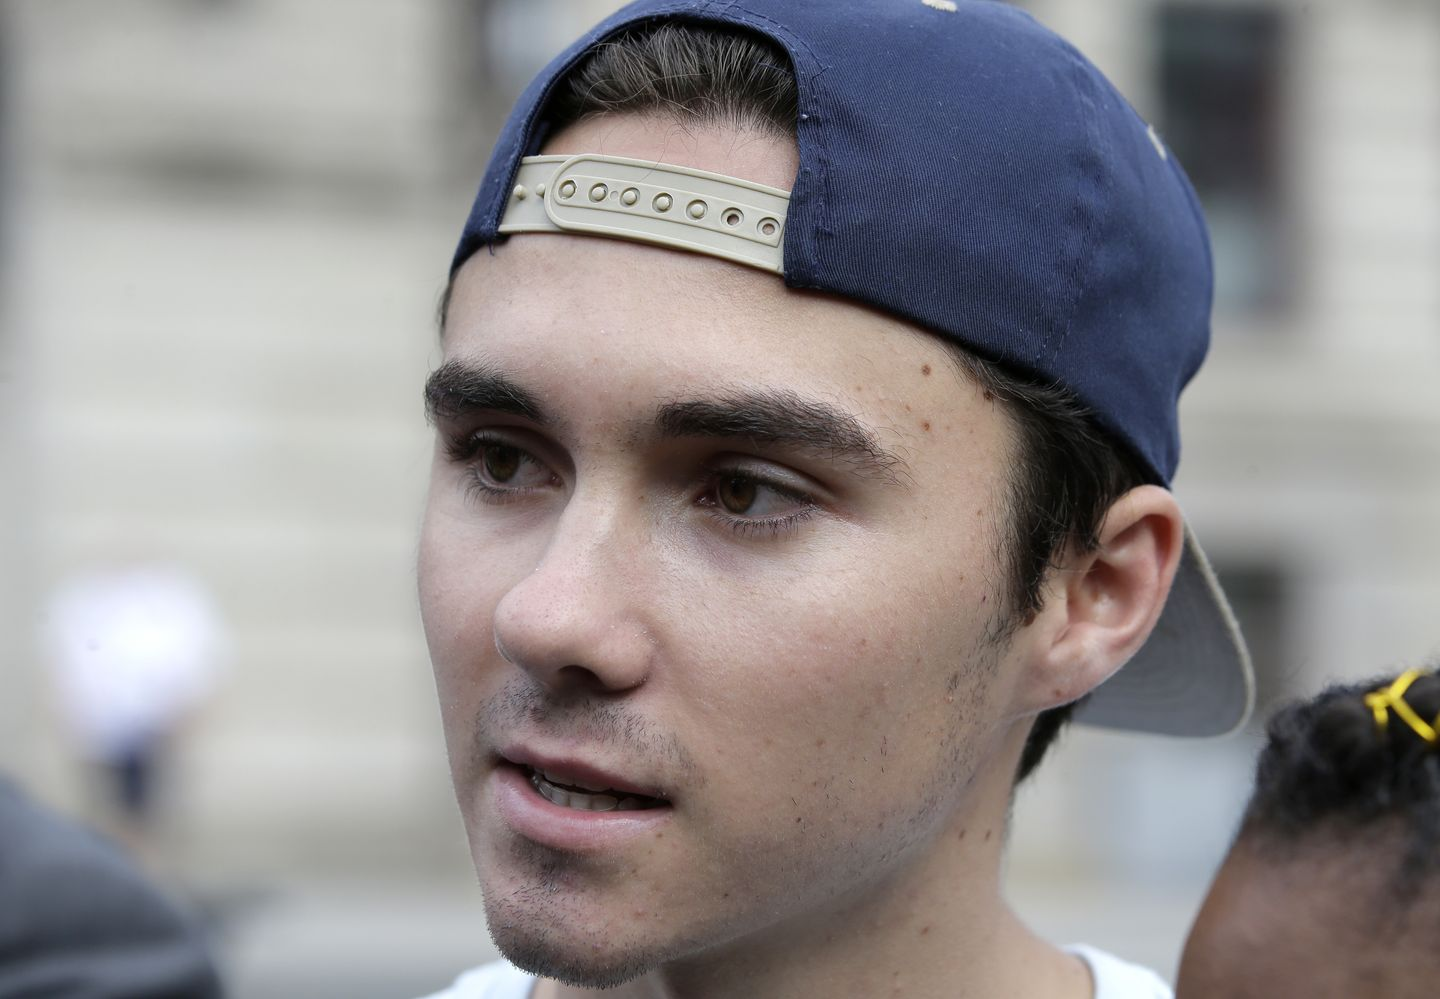 David Hogg quits Good Pillow, MyPillow competitor, after two months